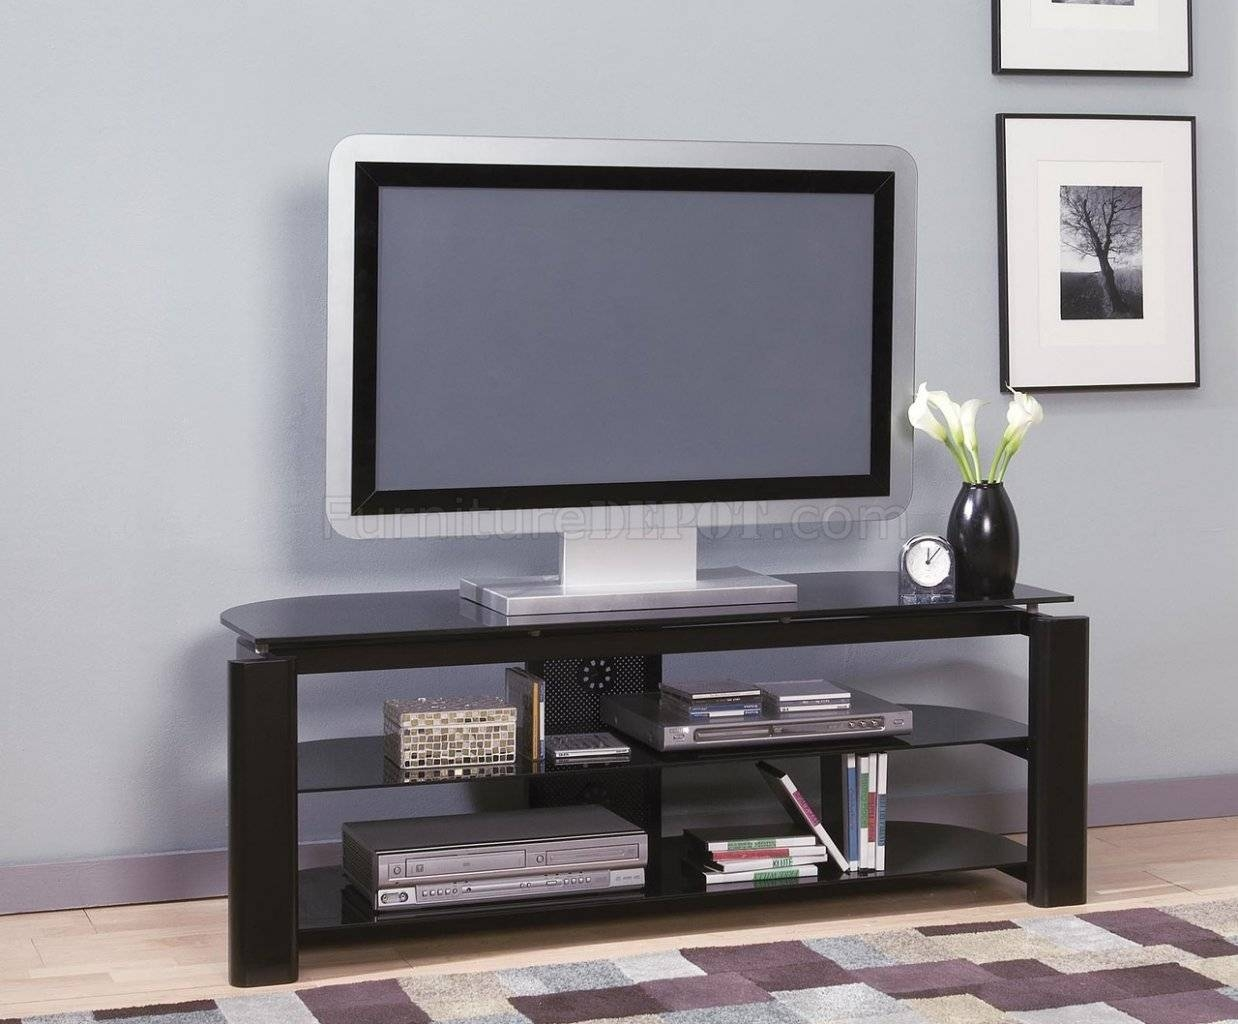 Black Glass & Metal Modern Tv Stand W/storage Shelves pertaining to Modern Glass Tv Stands (Image 2 of 15)